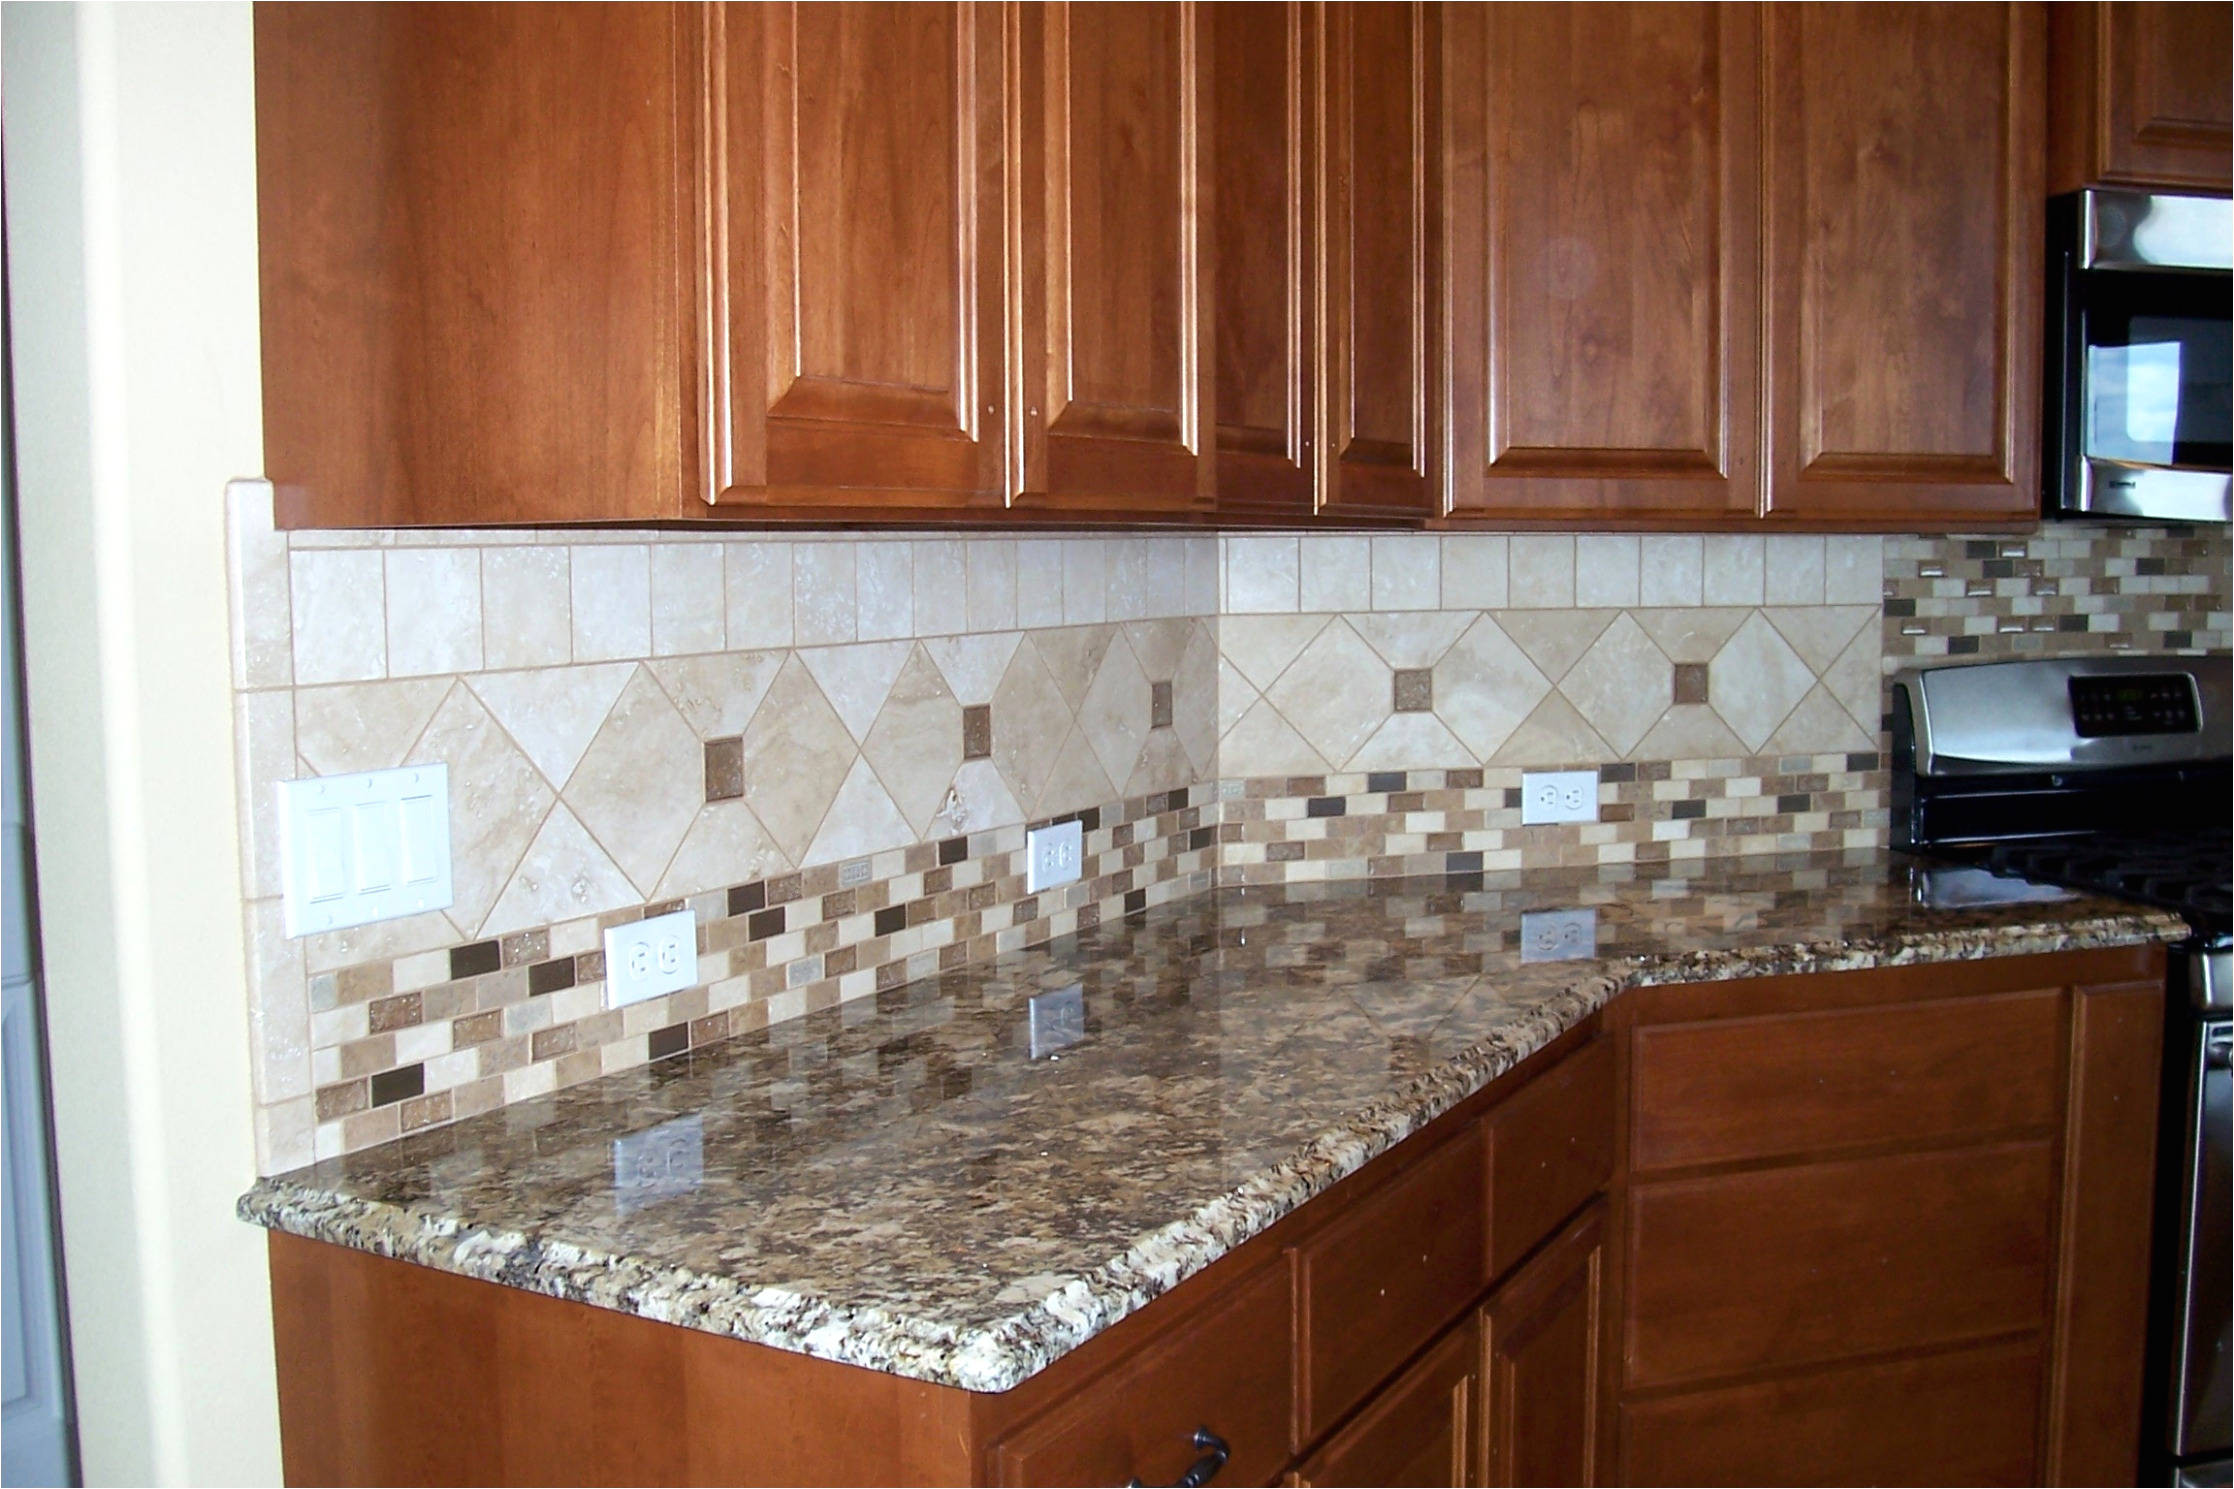 seafoam green granite countertops lovely stained glass mosaic tiles elegant 12 glass tile kitchen backsplash